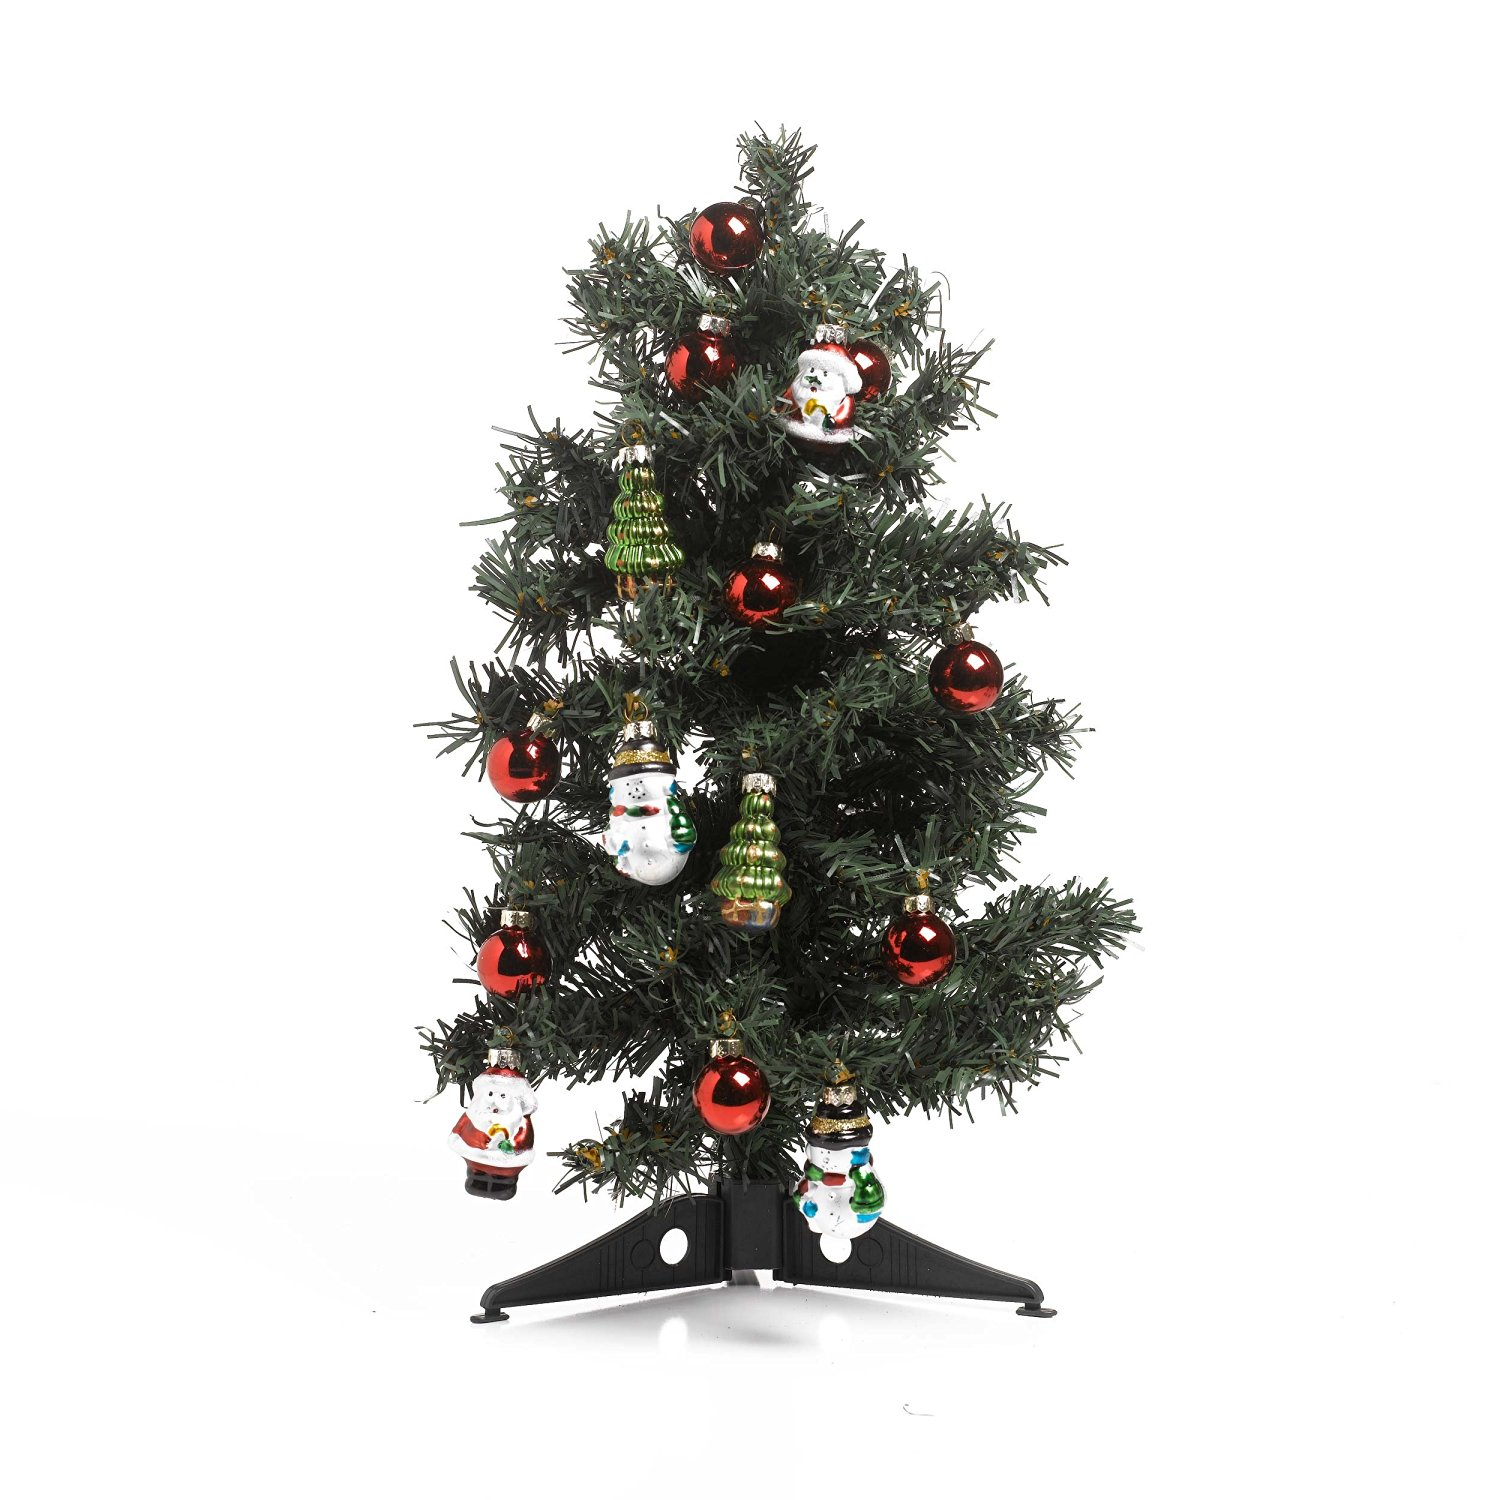 Kaemingk Mini Decorated Christmas Tree with Ornaments with Red Balls, Santa, Snowmen and Christmas Trees